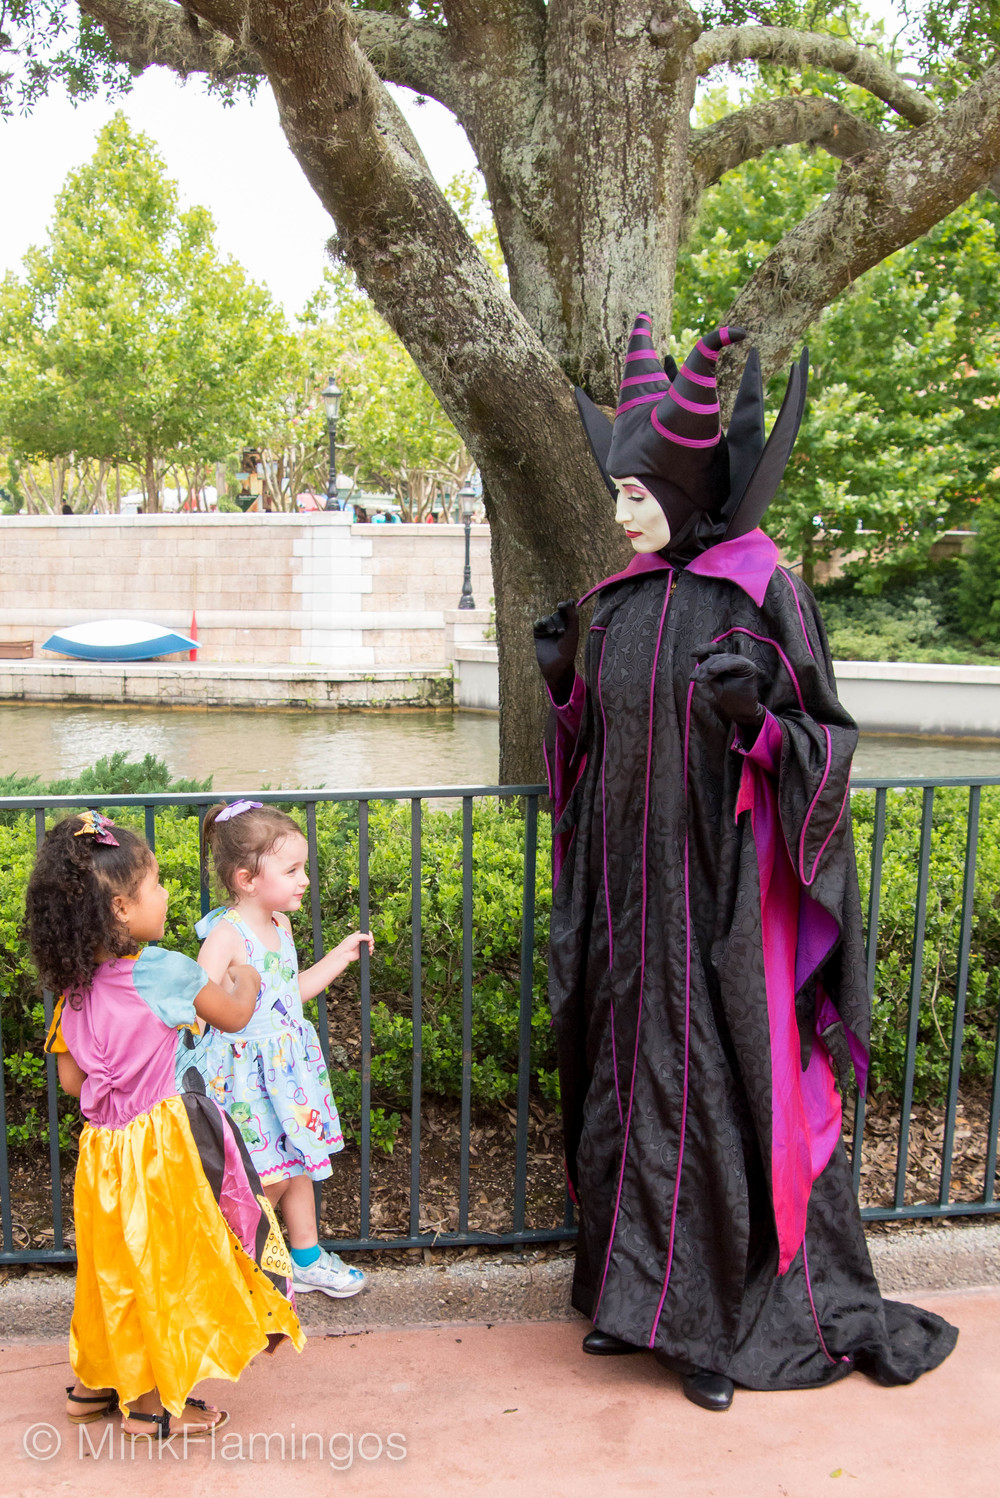 Daphne, Soleil, and Maleficent discuss plans for World Domination